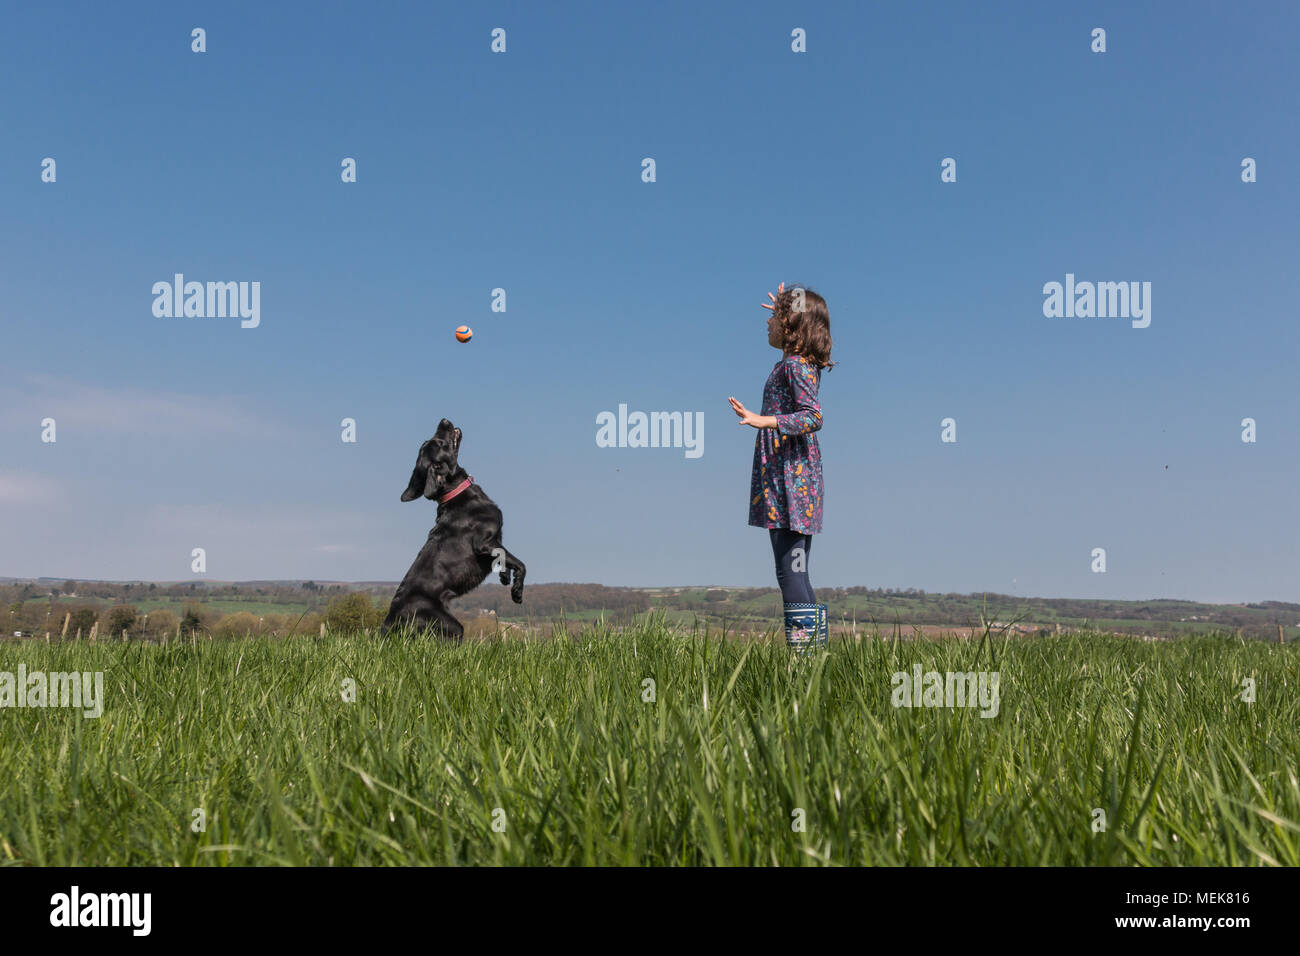 A young girl playing ball with a black Labrador in a field - Stock Image